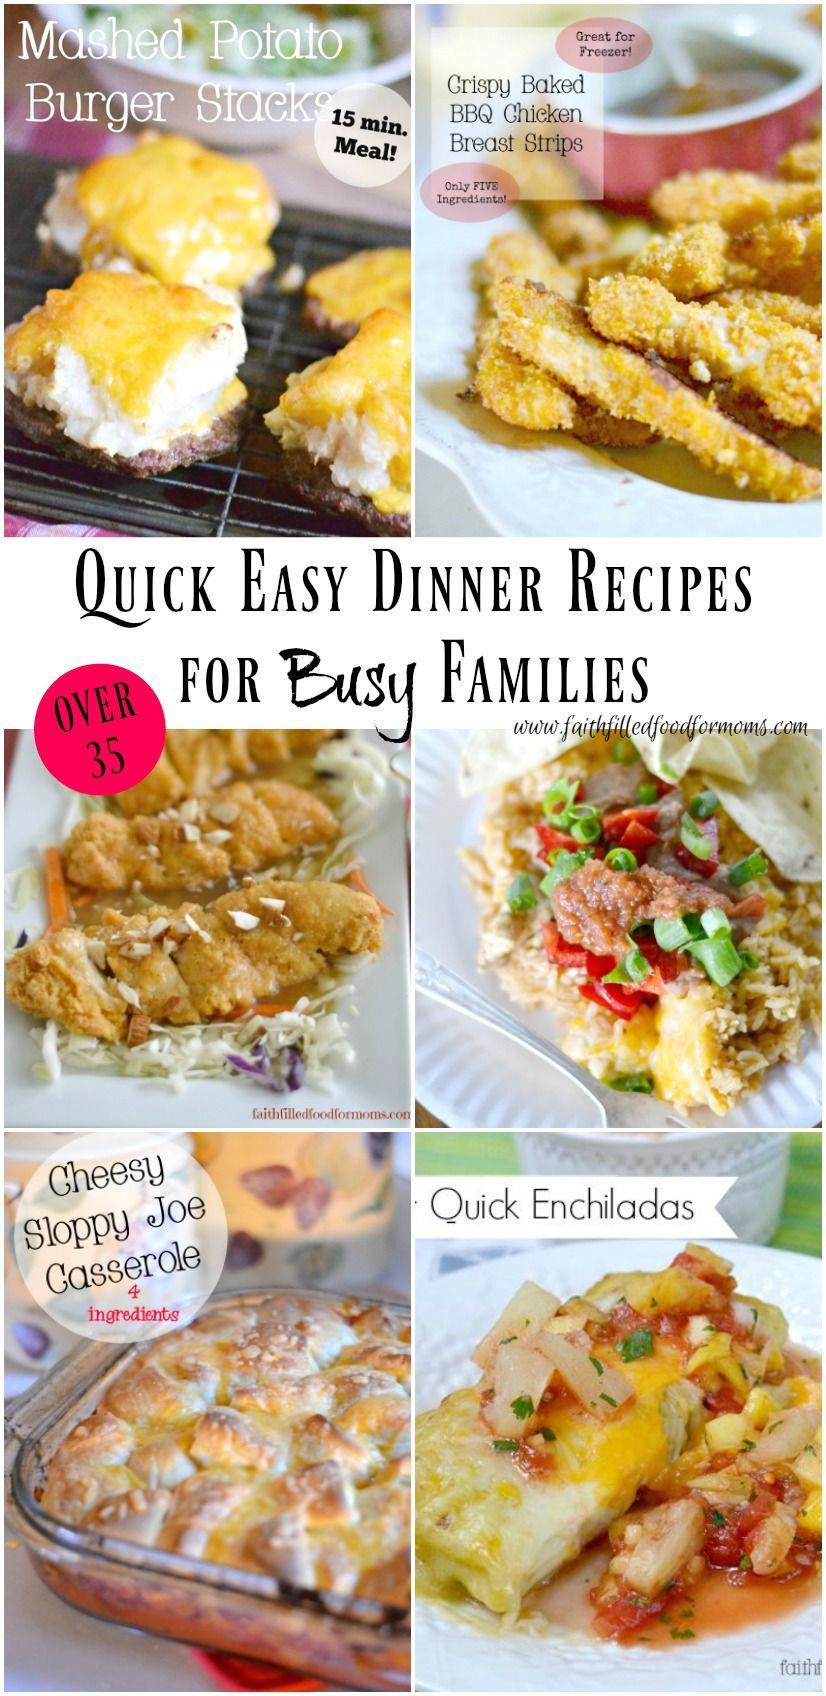 Quick Easy Dinner Recipes for the Family images